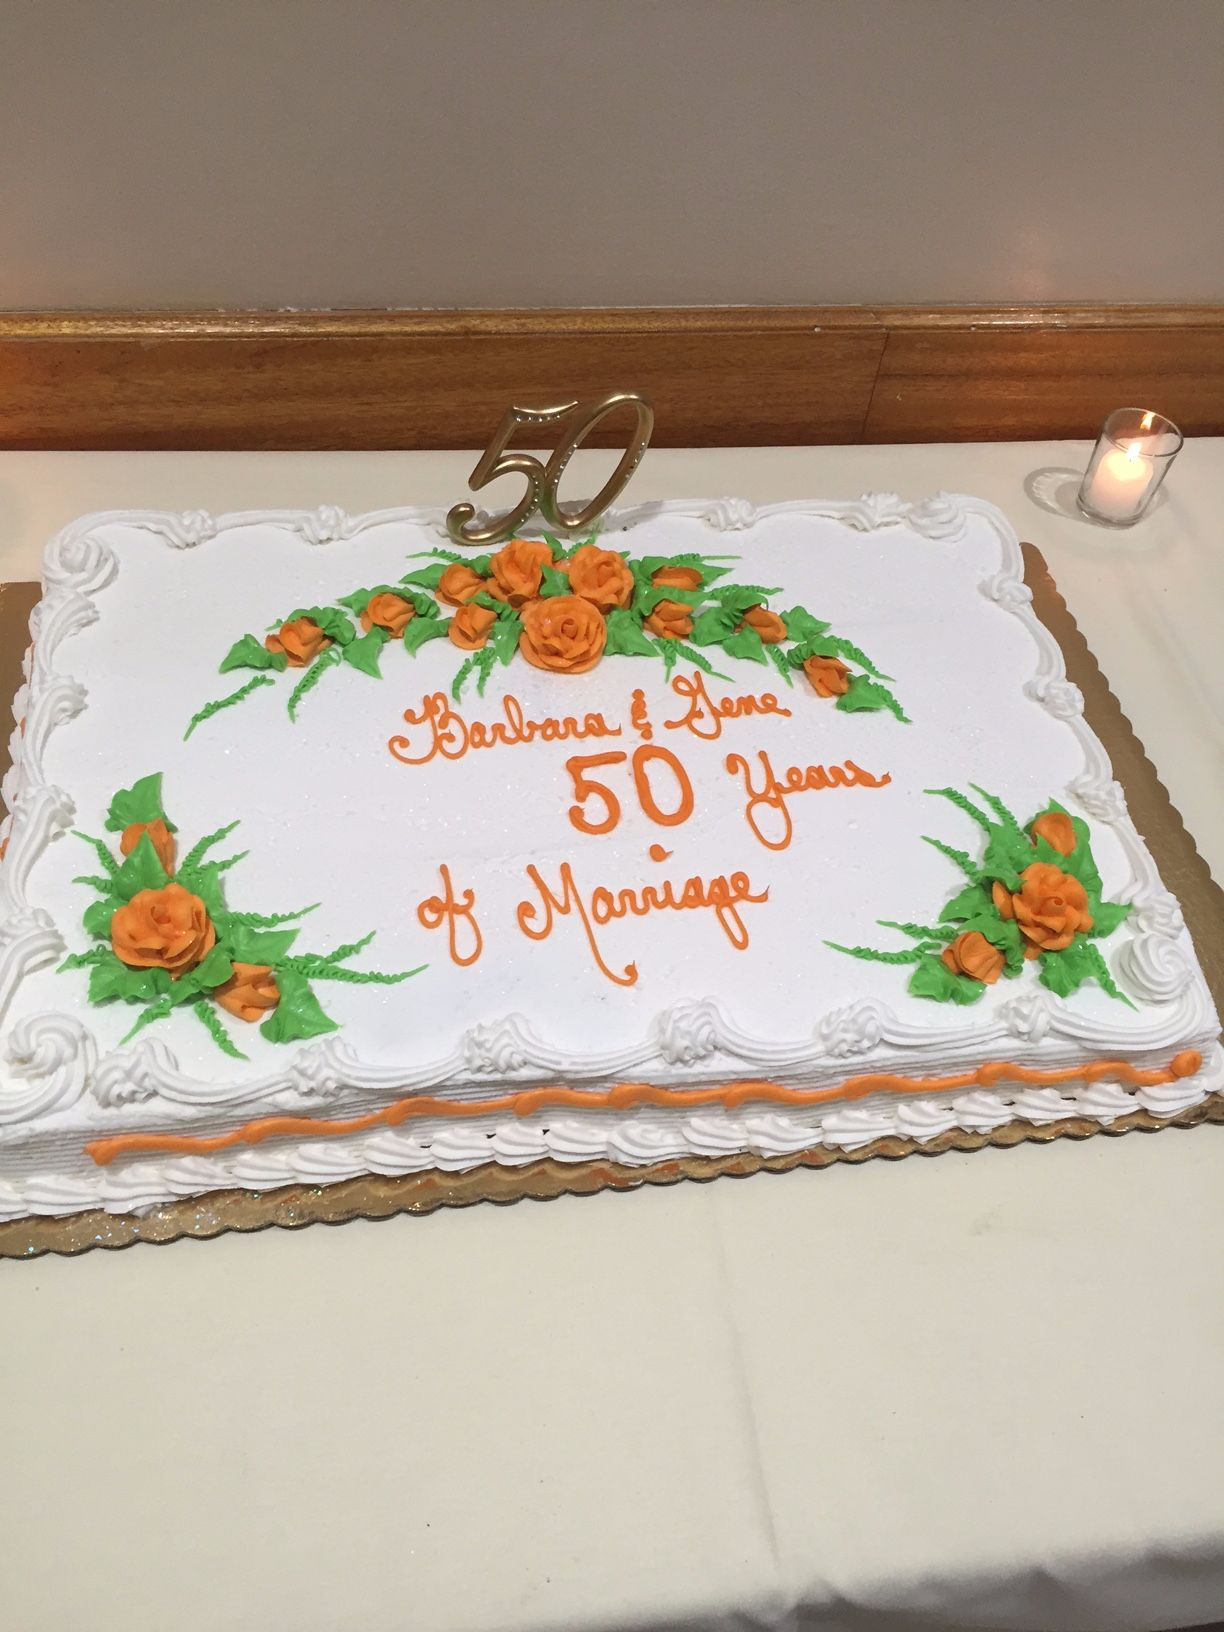 Anniversary Party Congratulations Barbara & Gene on 50 Years!